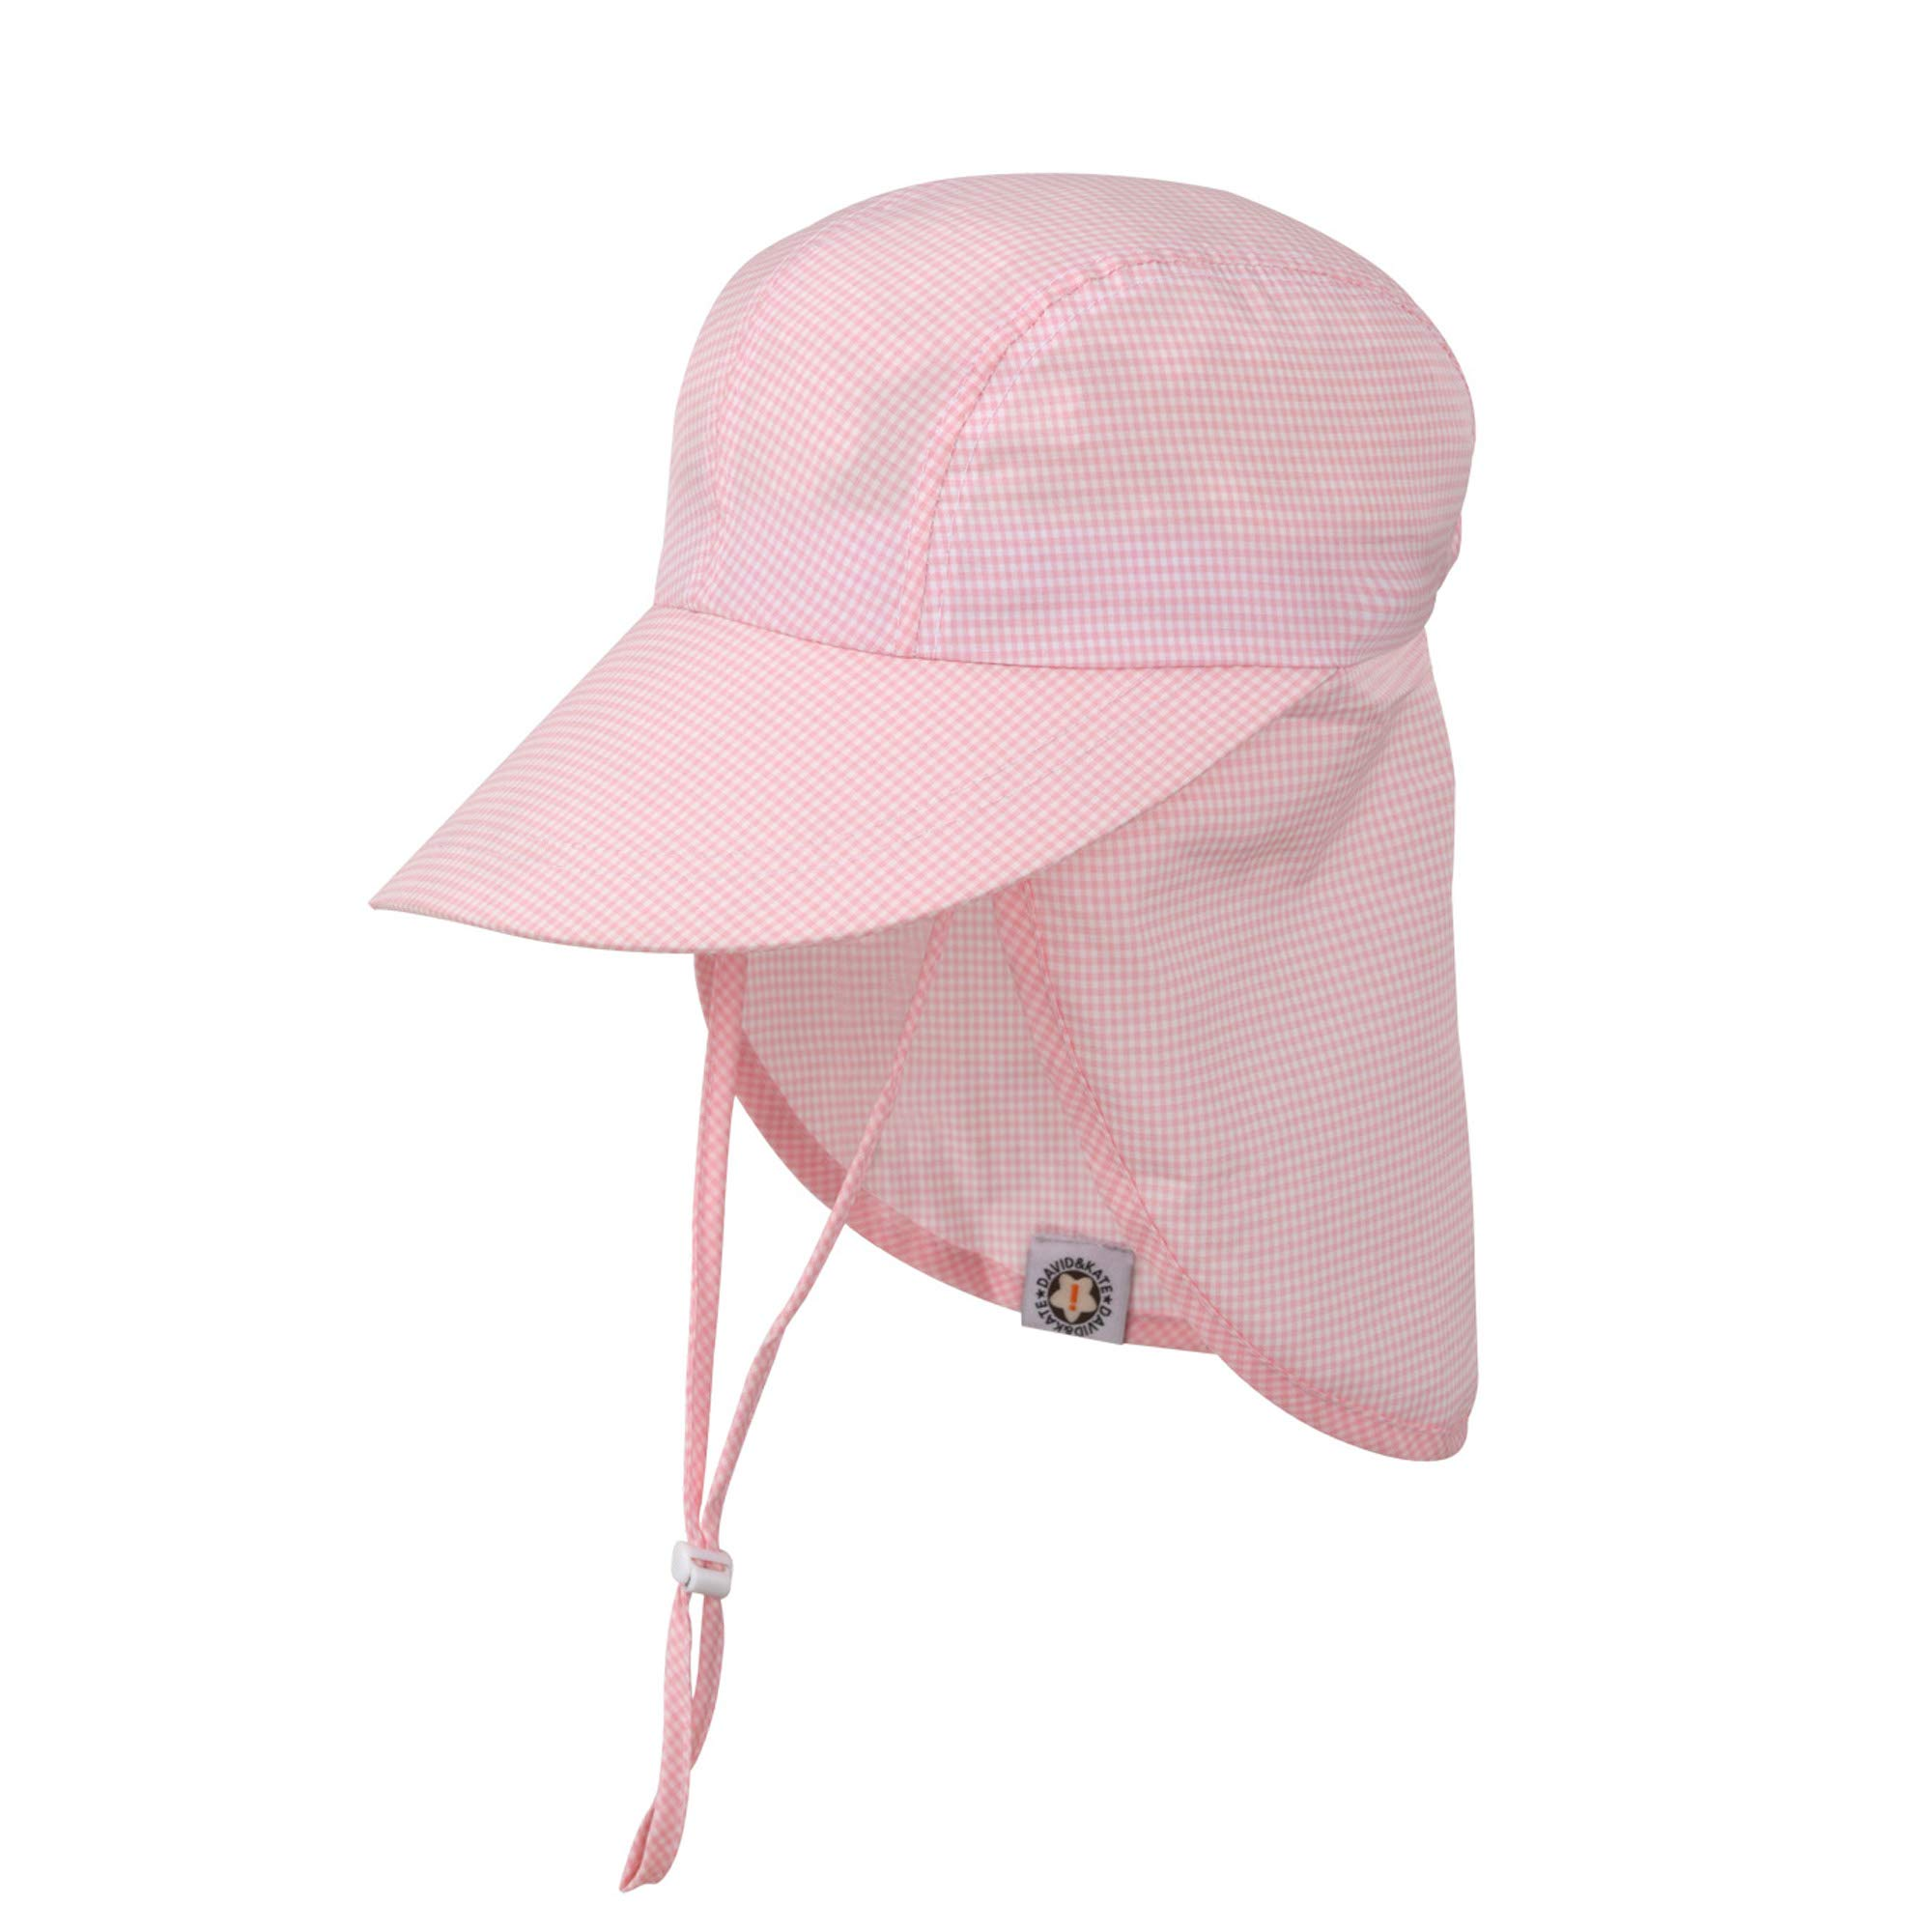 Kids Sun Protection Play Hat, Wide Brim, Waterproof, Easy Washable, Quick Dry, Stain Resistant (Pink Check, Medium)